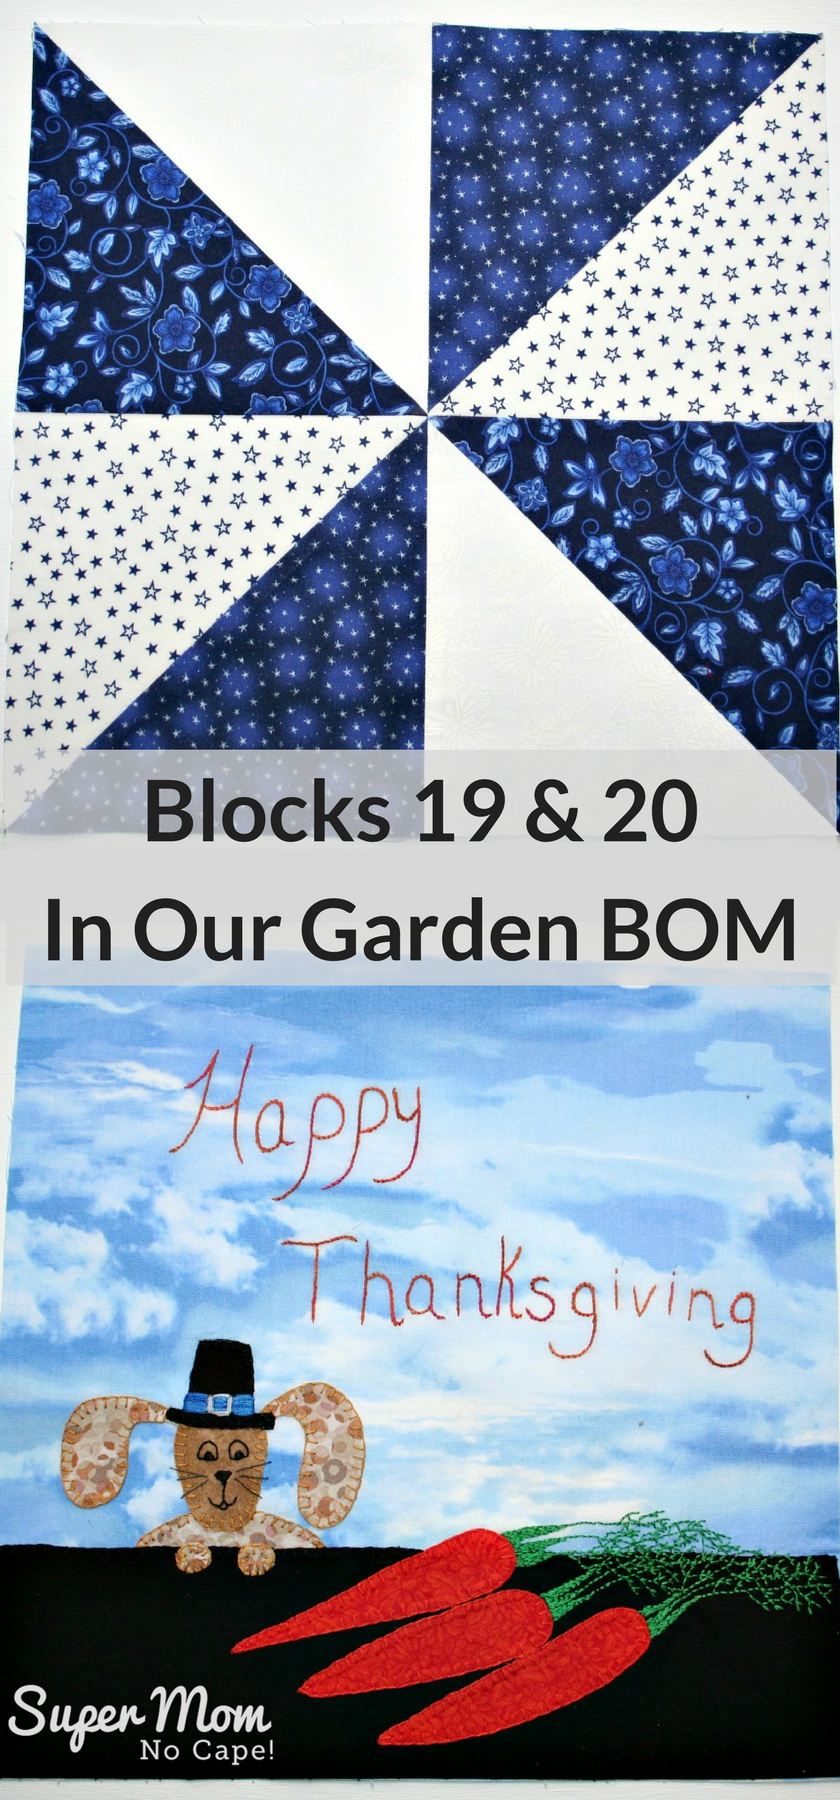 Blocks 19 & 20 In Our Garden BOM